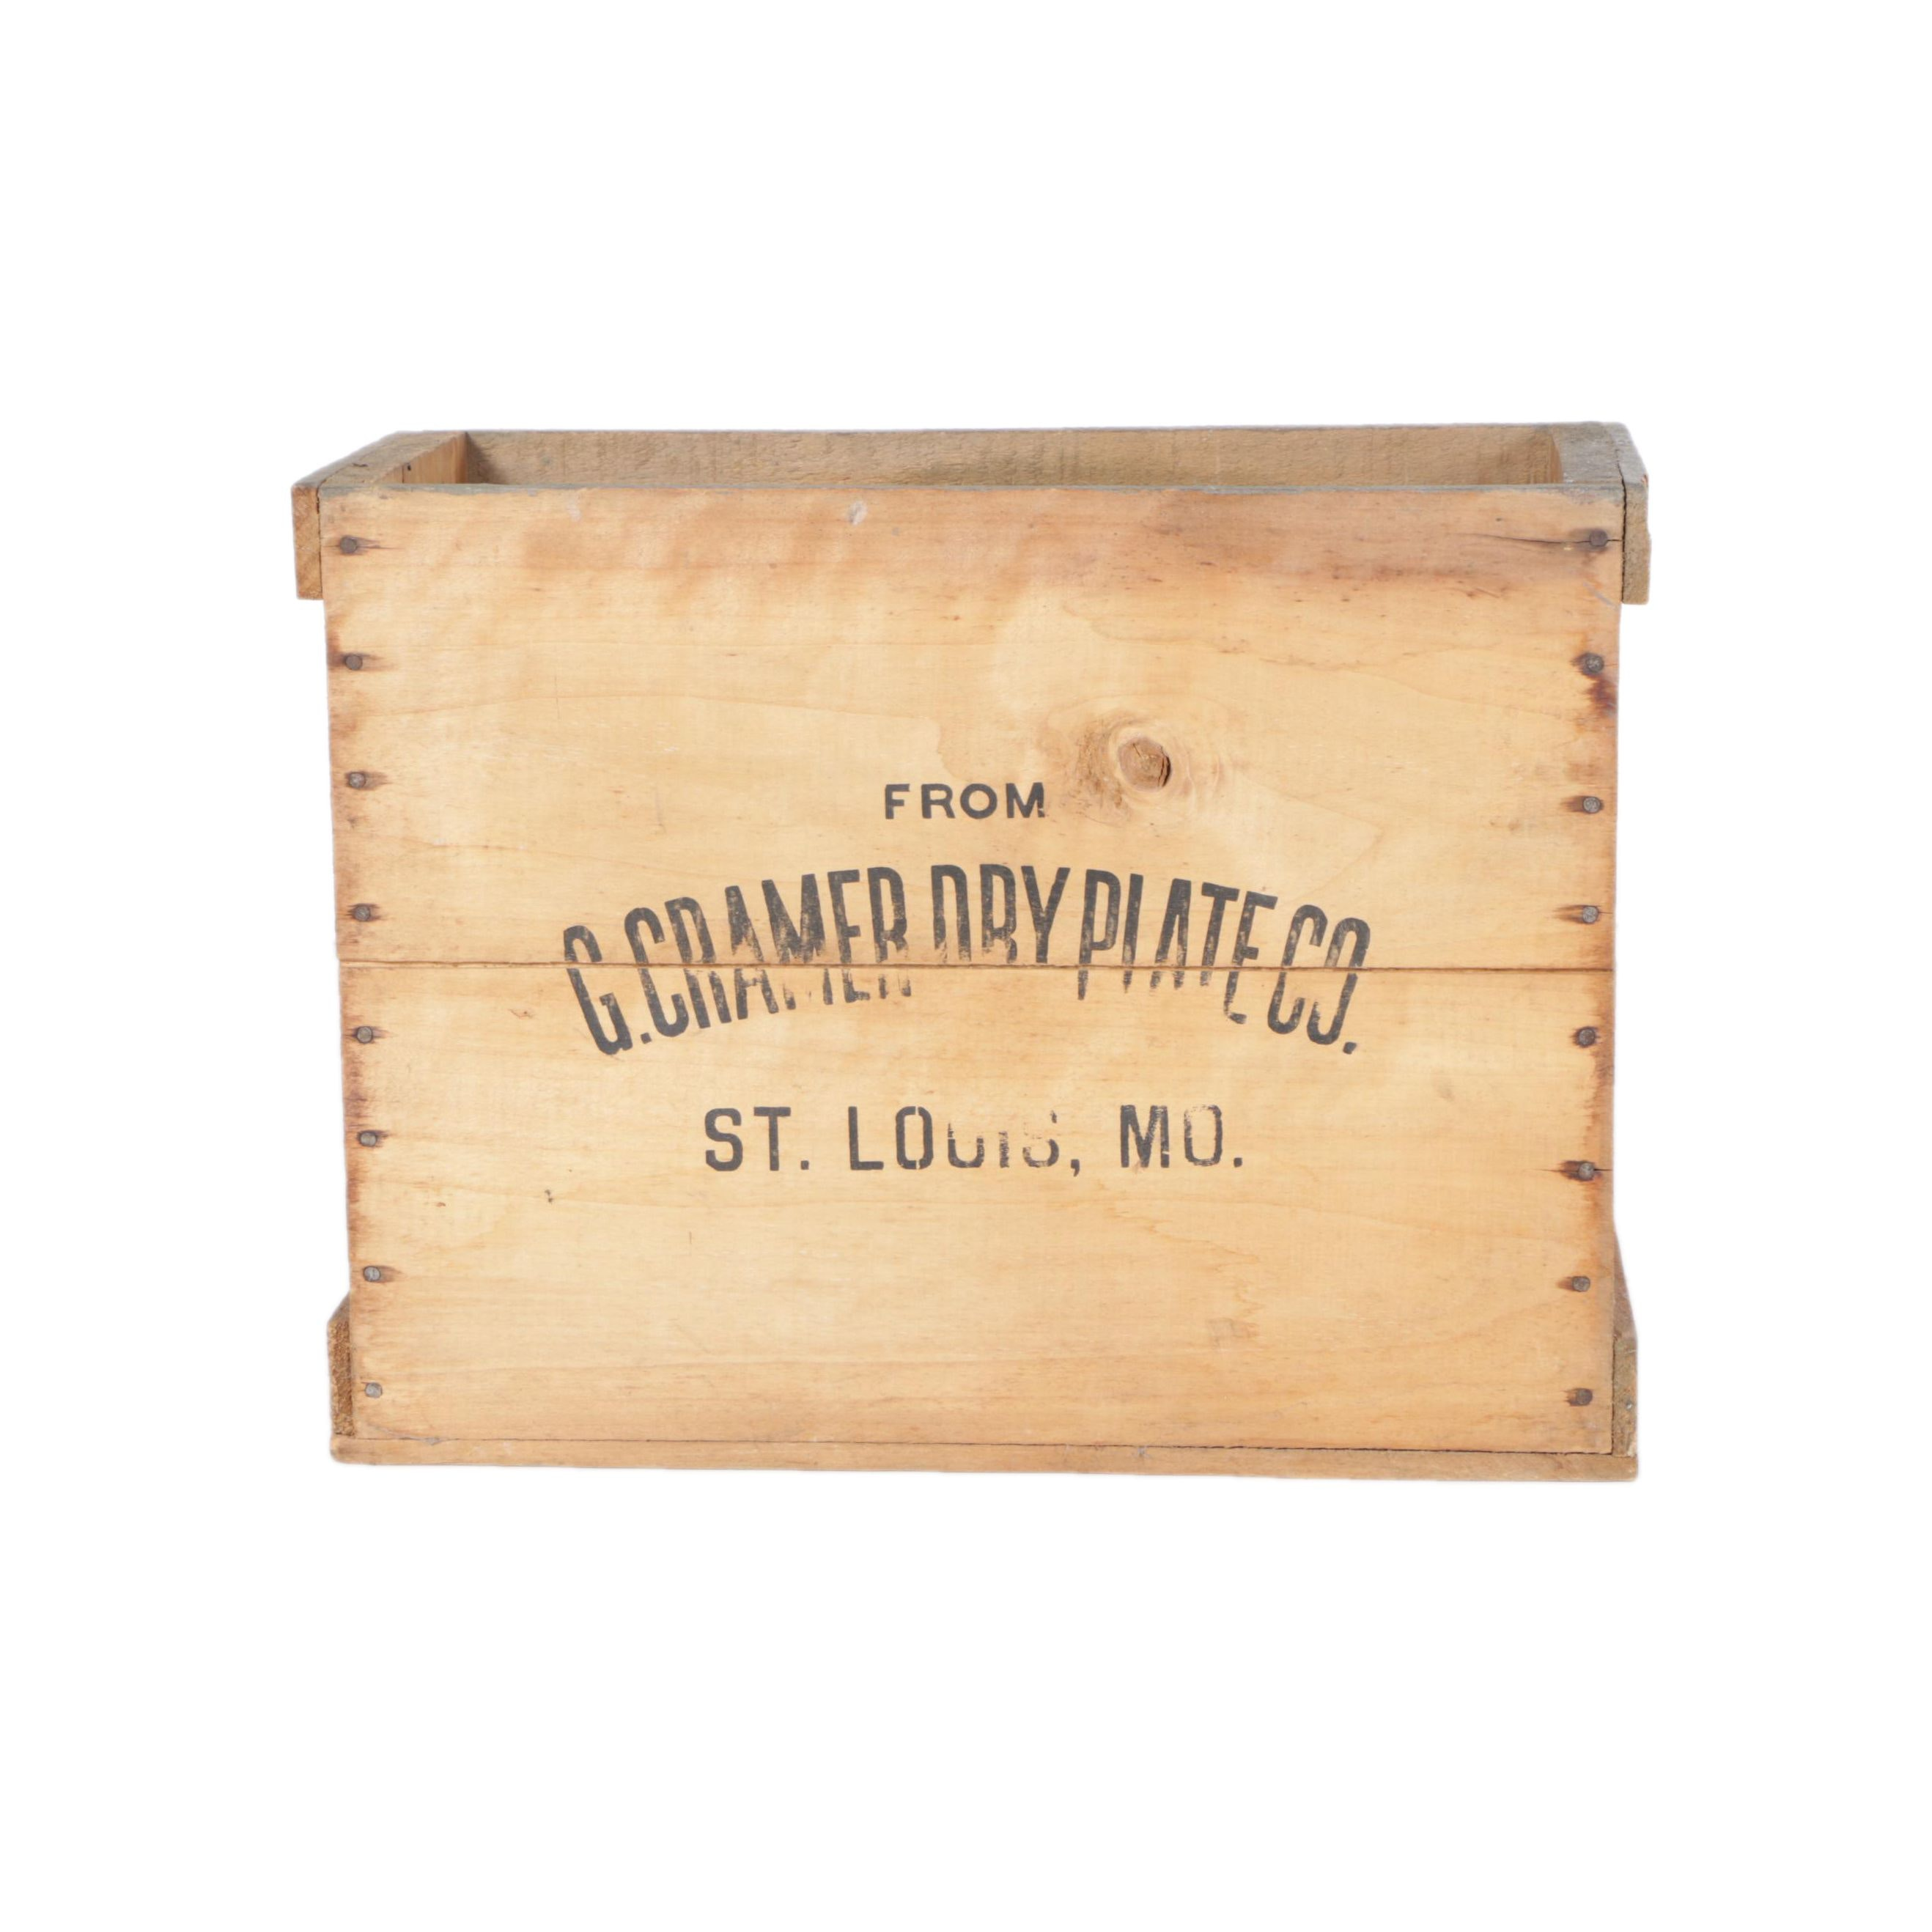 Antique Crate from Photography G. Cramer Dry Plate Co.